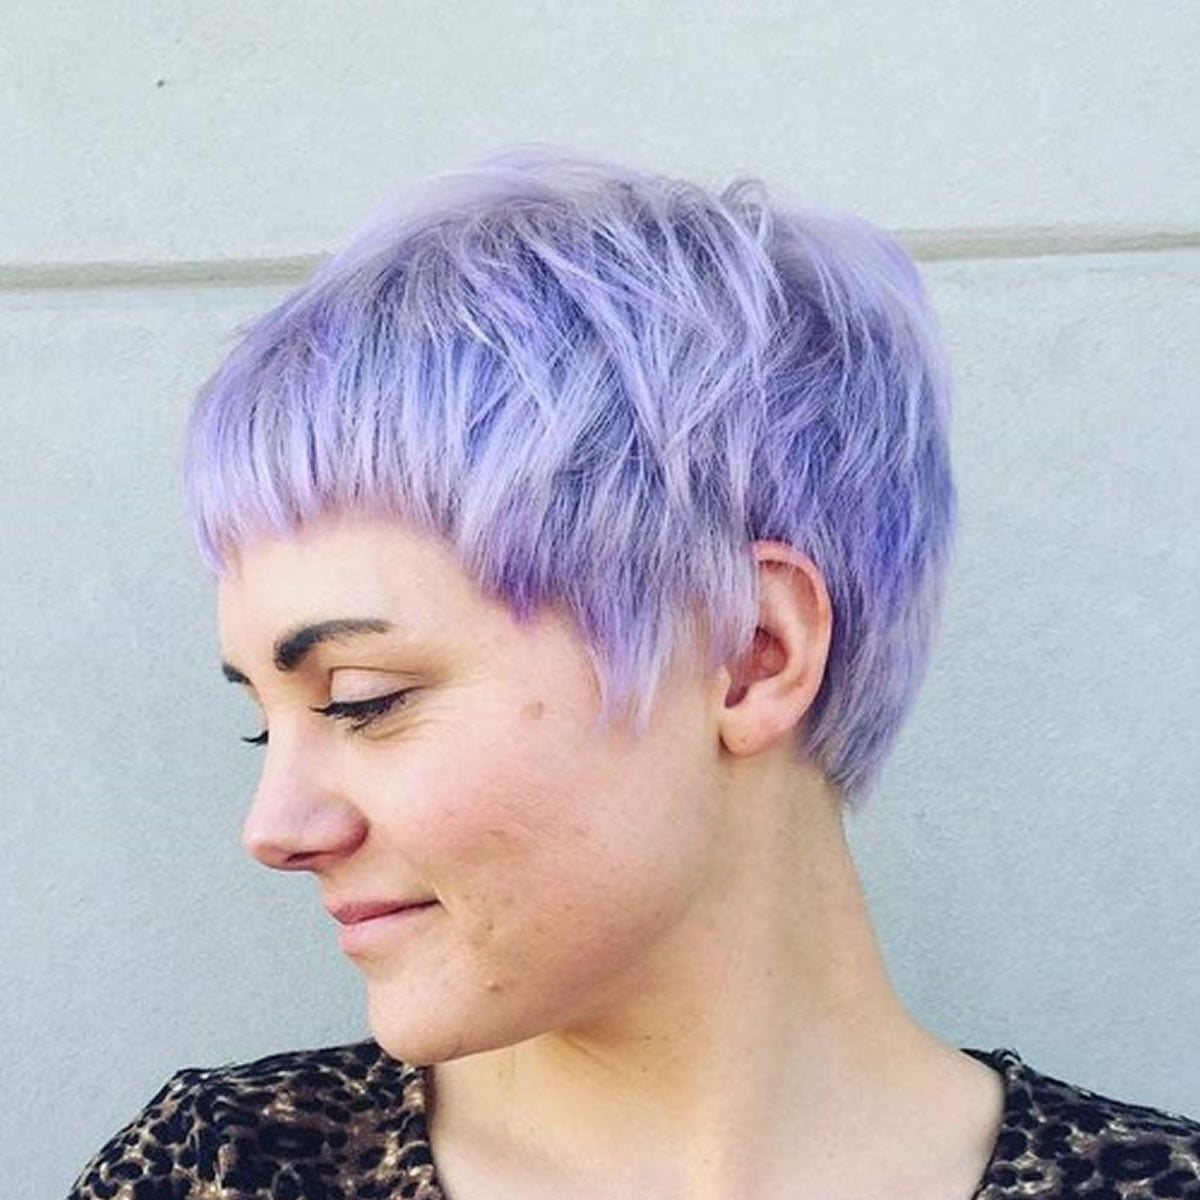 pastel blue-pixie hair style